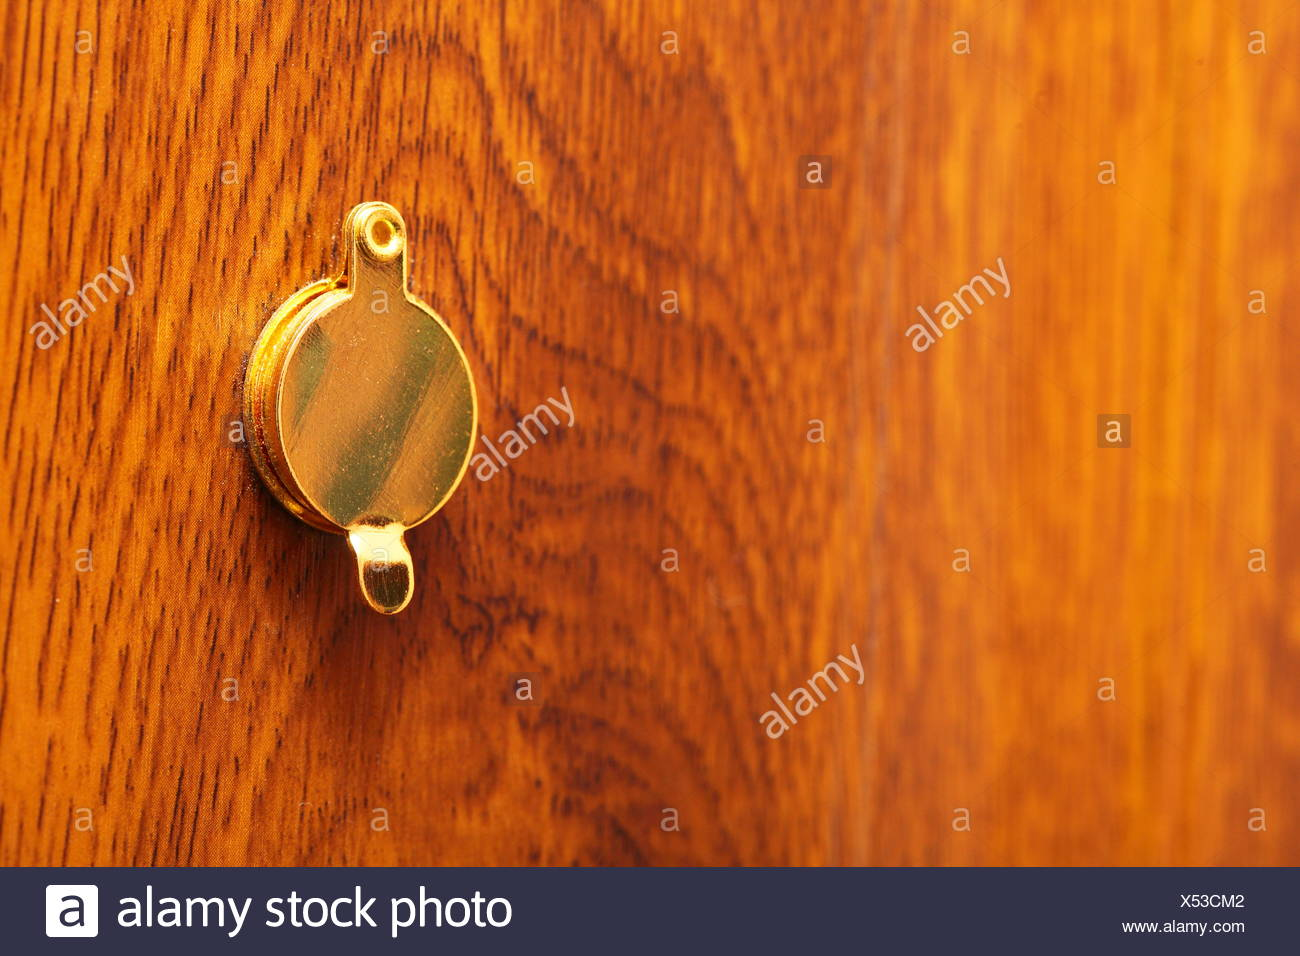 spy hole or peephole view at door - Stock Image & Peephole Door Stock Photos \u0026 Peephole Door Stock Images - Alamy